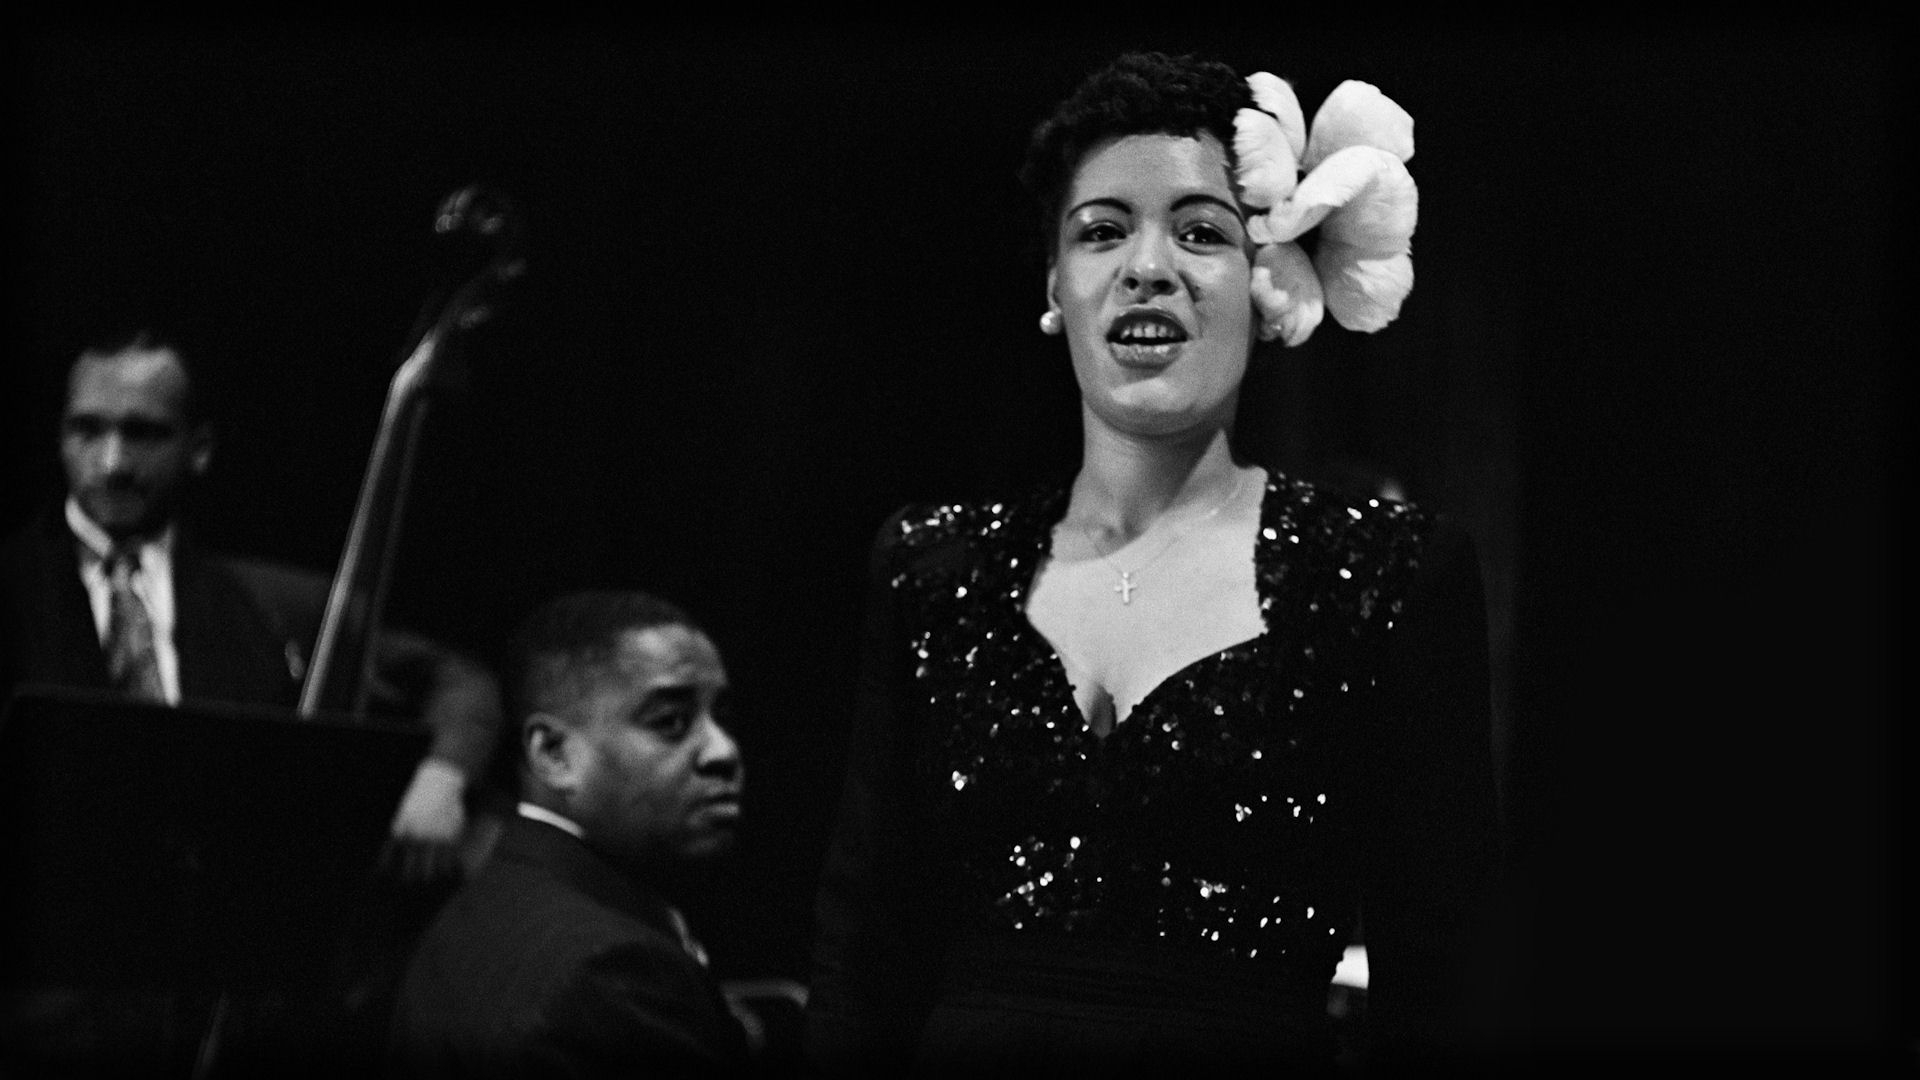 billie_holiday_flower_soloist_girl_dress_hd-wallpaper-7231